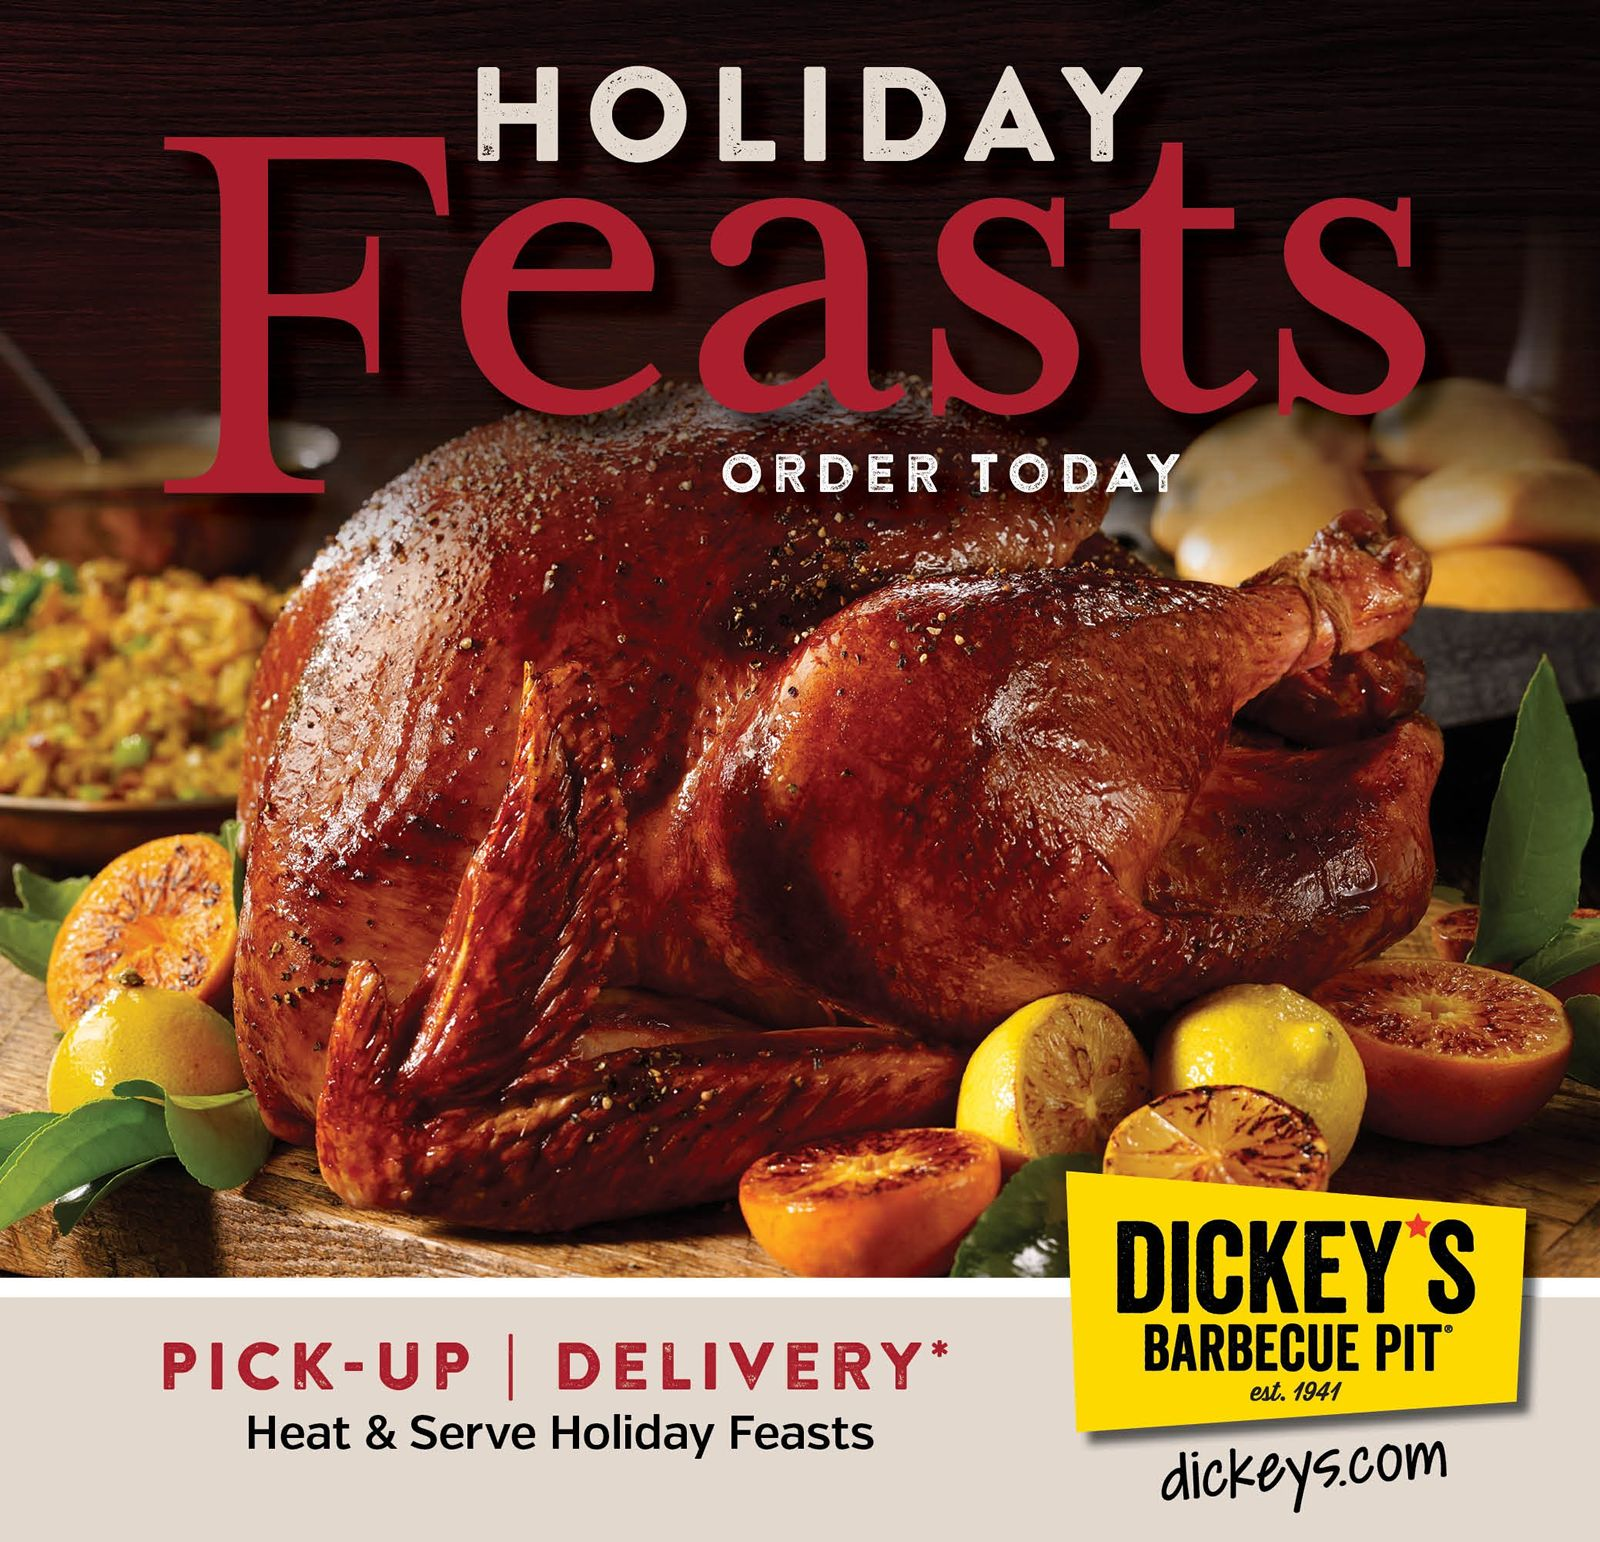 Dickey's Barbecue Pit Sells Record Number of Turkeys this Holiday Season